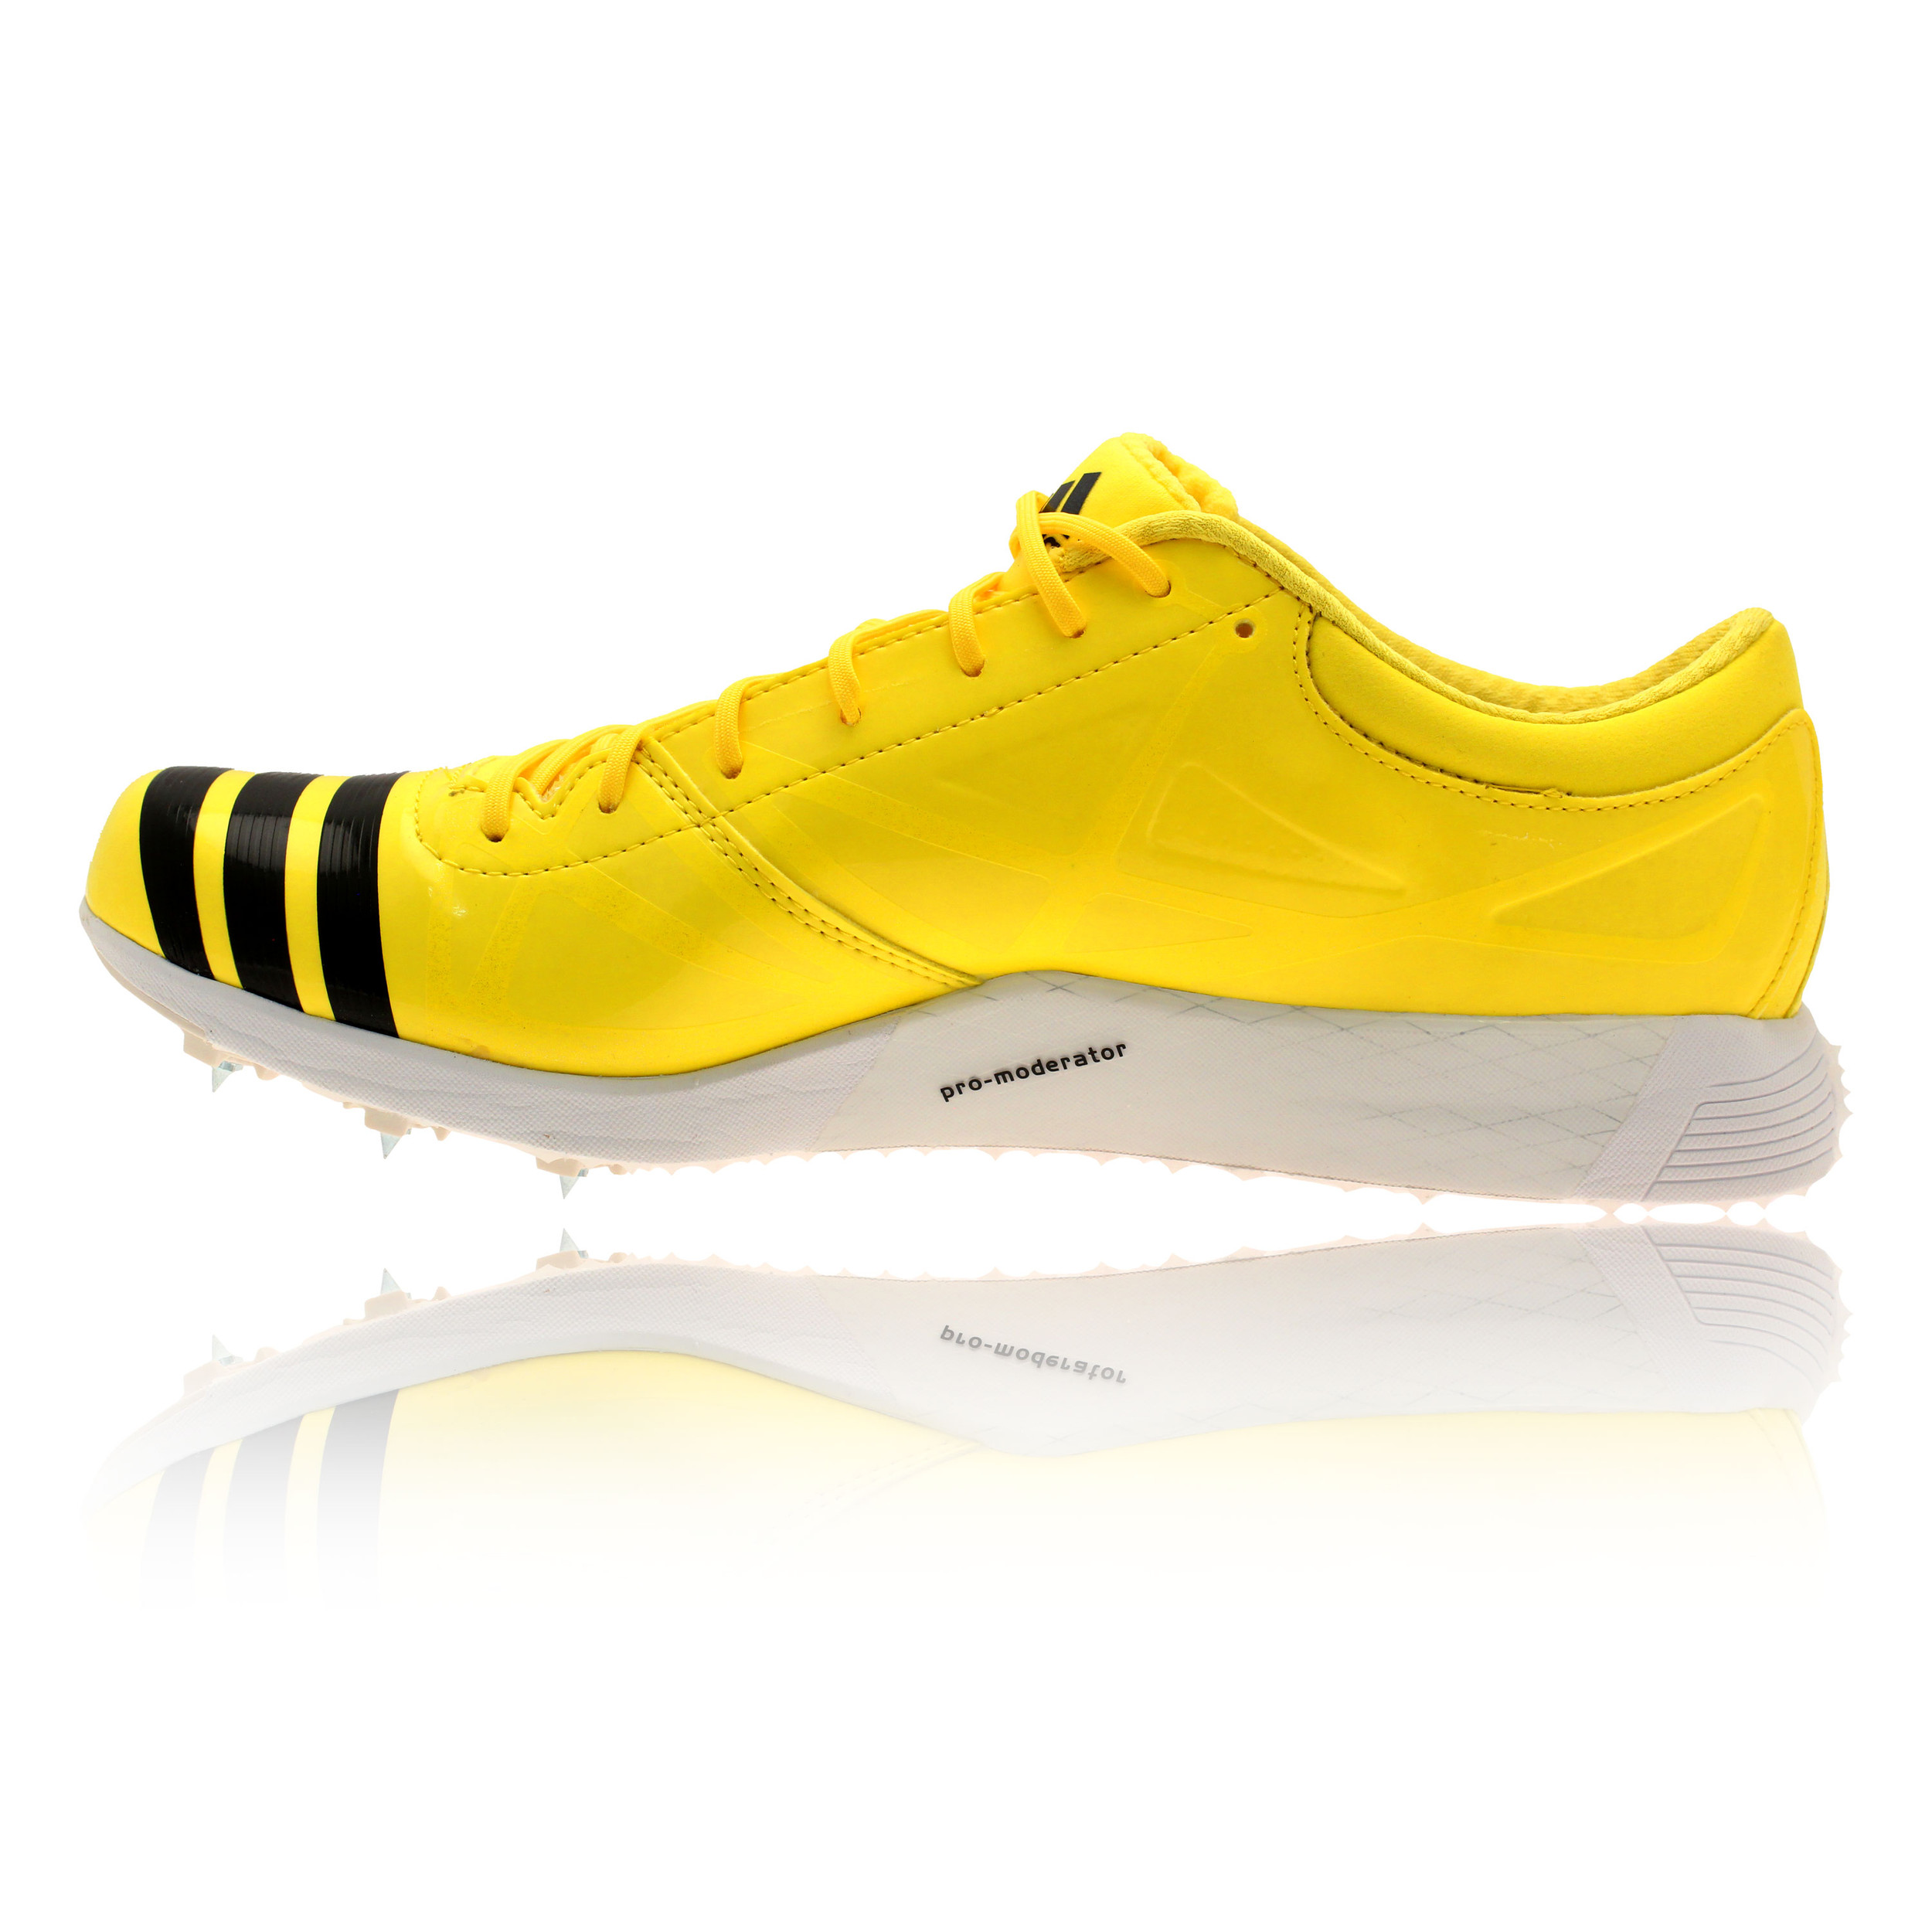 Adidas Adizero Triple Jump Spikes Mens Yellow Trainers Running Sports Shoes